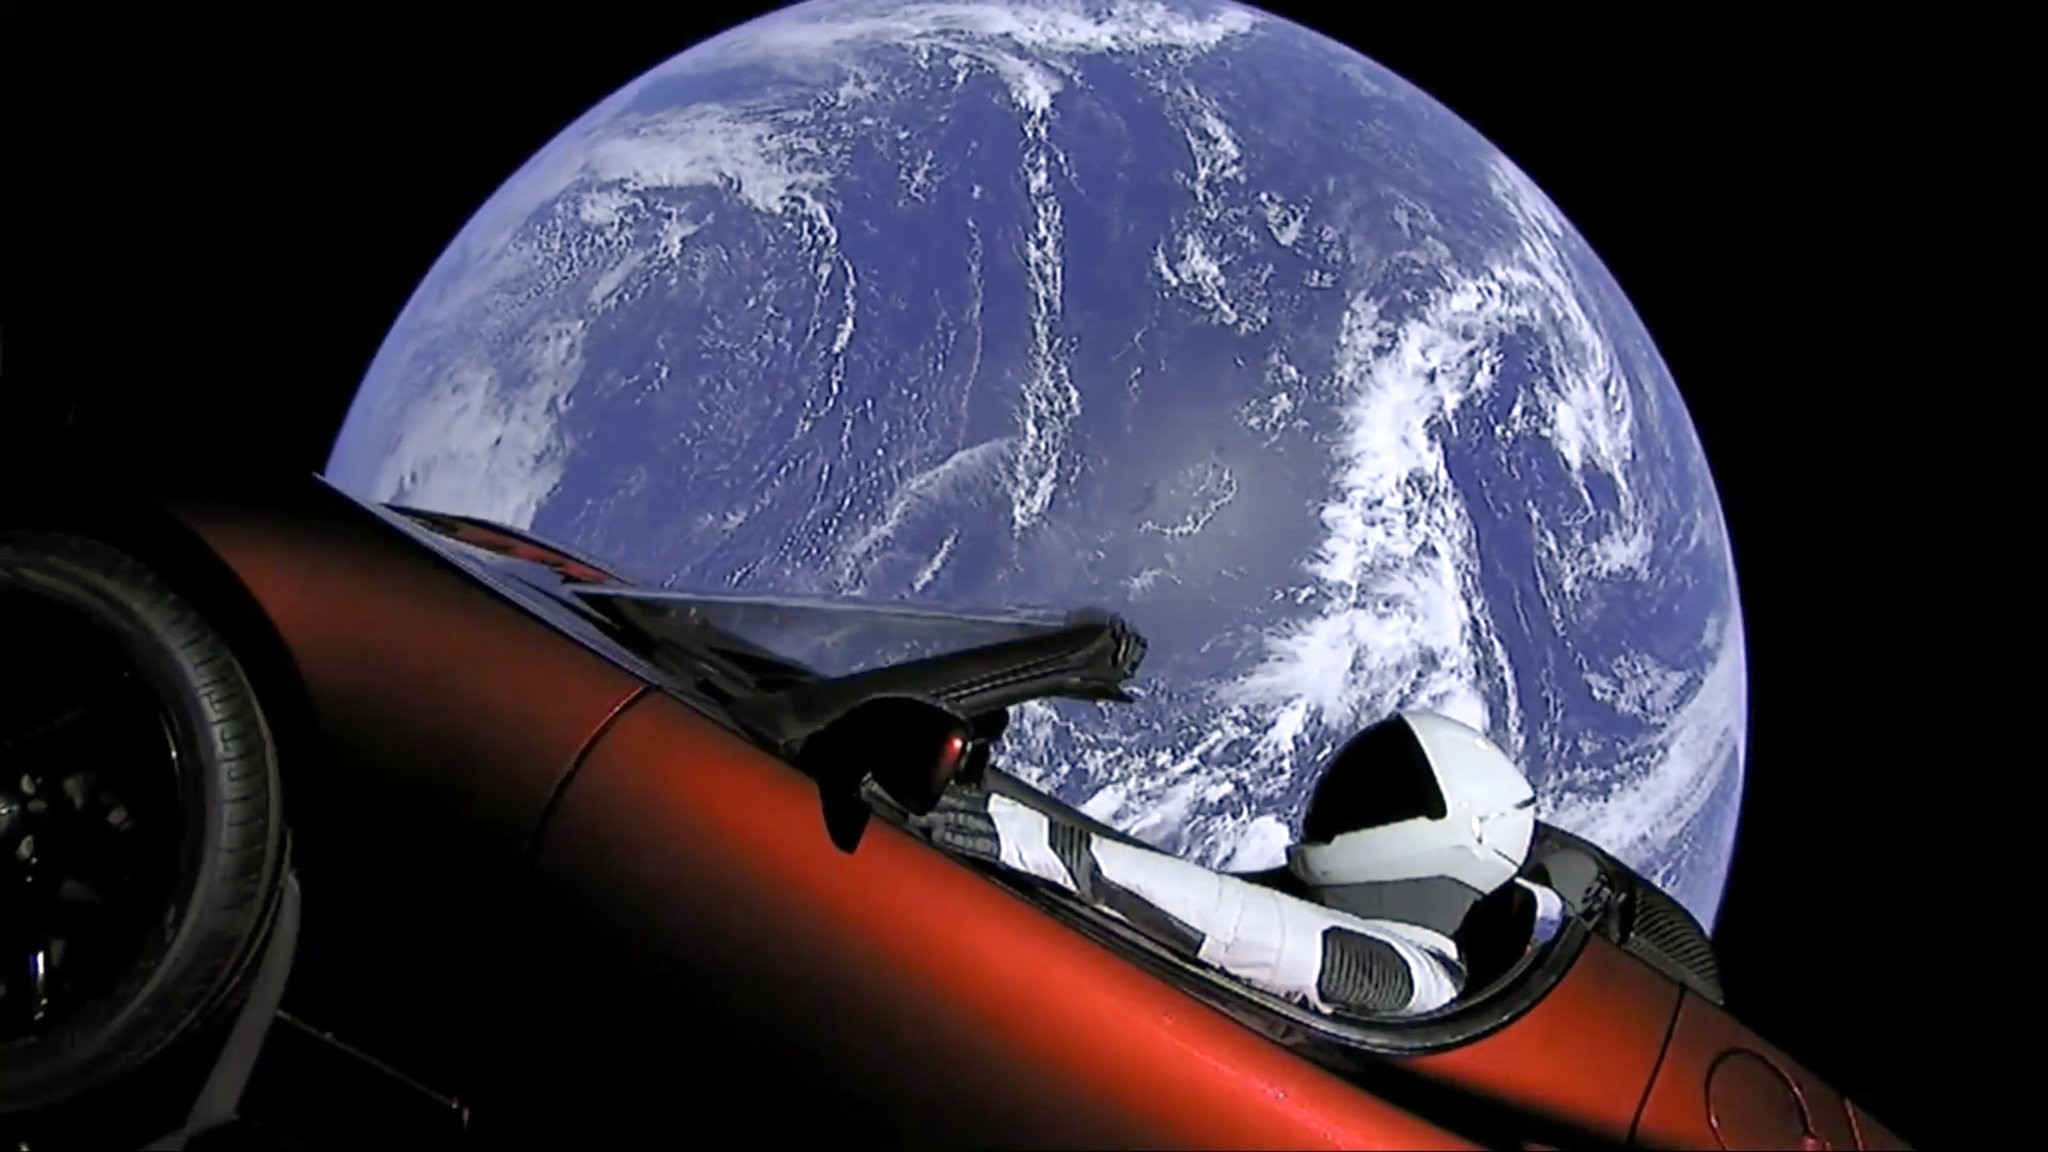 An image from video provided by SpaceX shows the companyu2019s spacesuit in Elon Musku2019s red Tesla sports car, which was launched into space during the first test flight of its Falcon Heavy rocket on Tuesday.